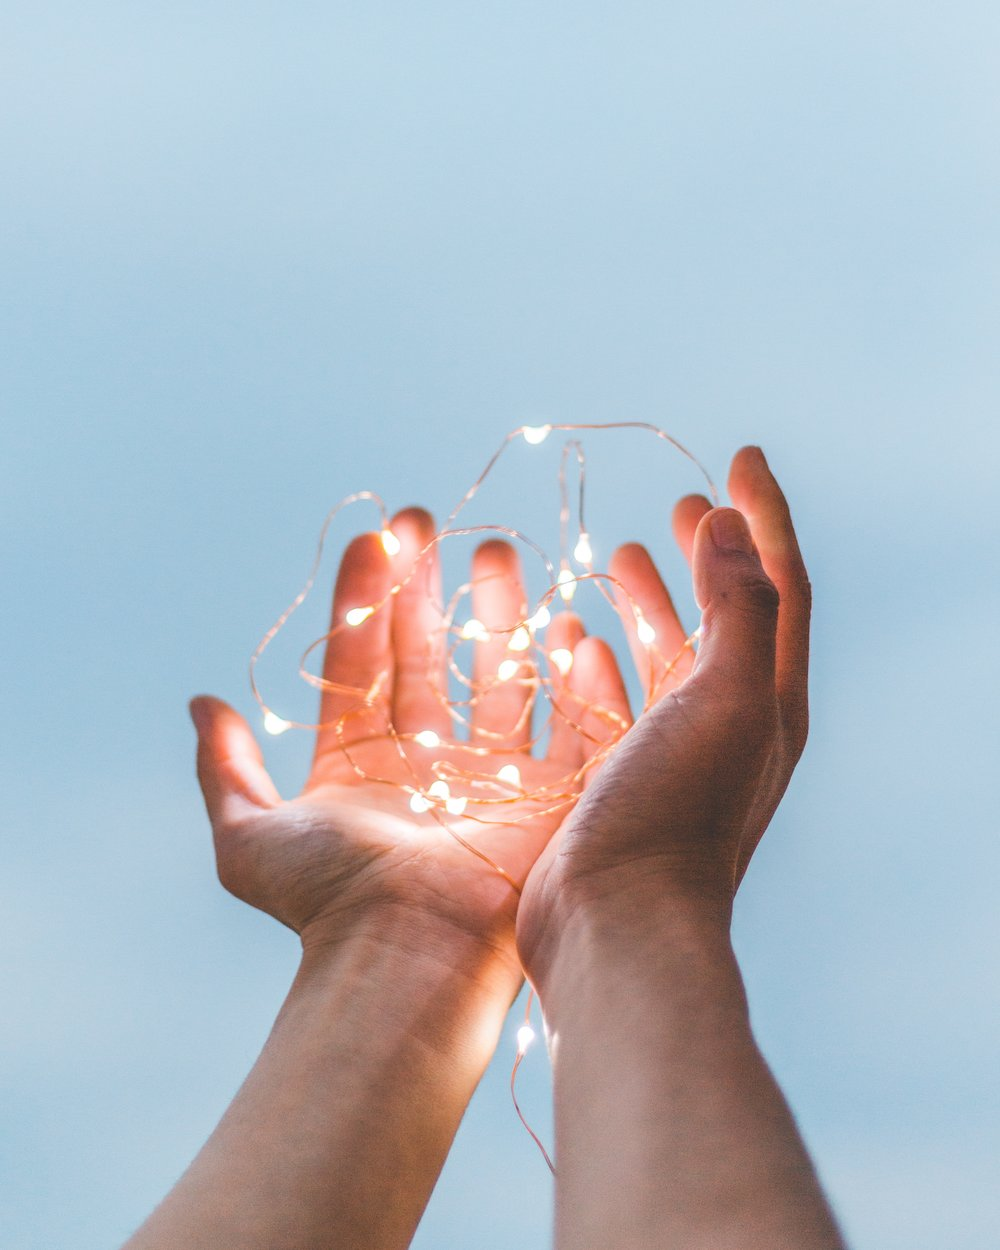 Its all in your hands - Tap into health and well being.